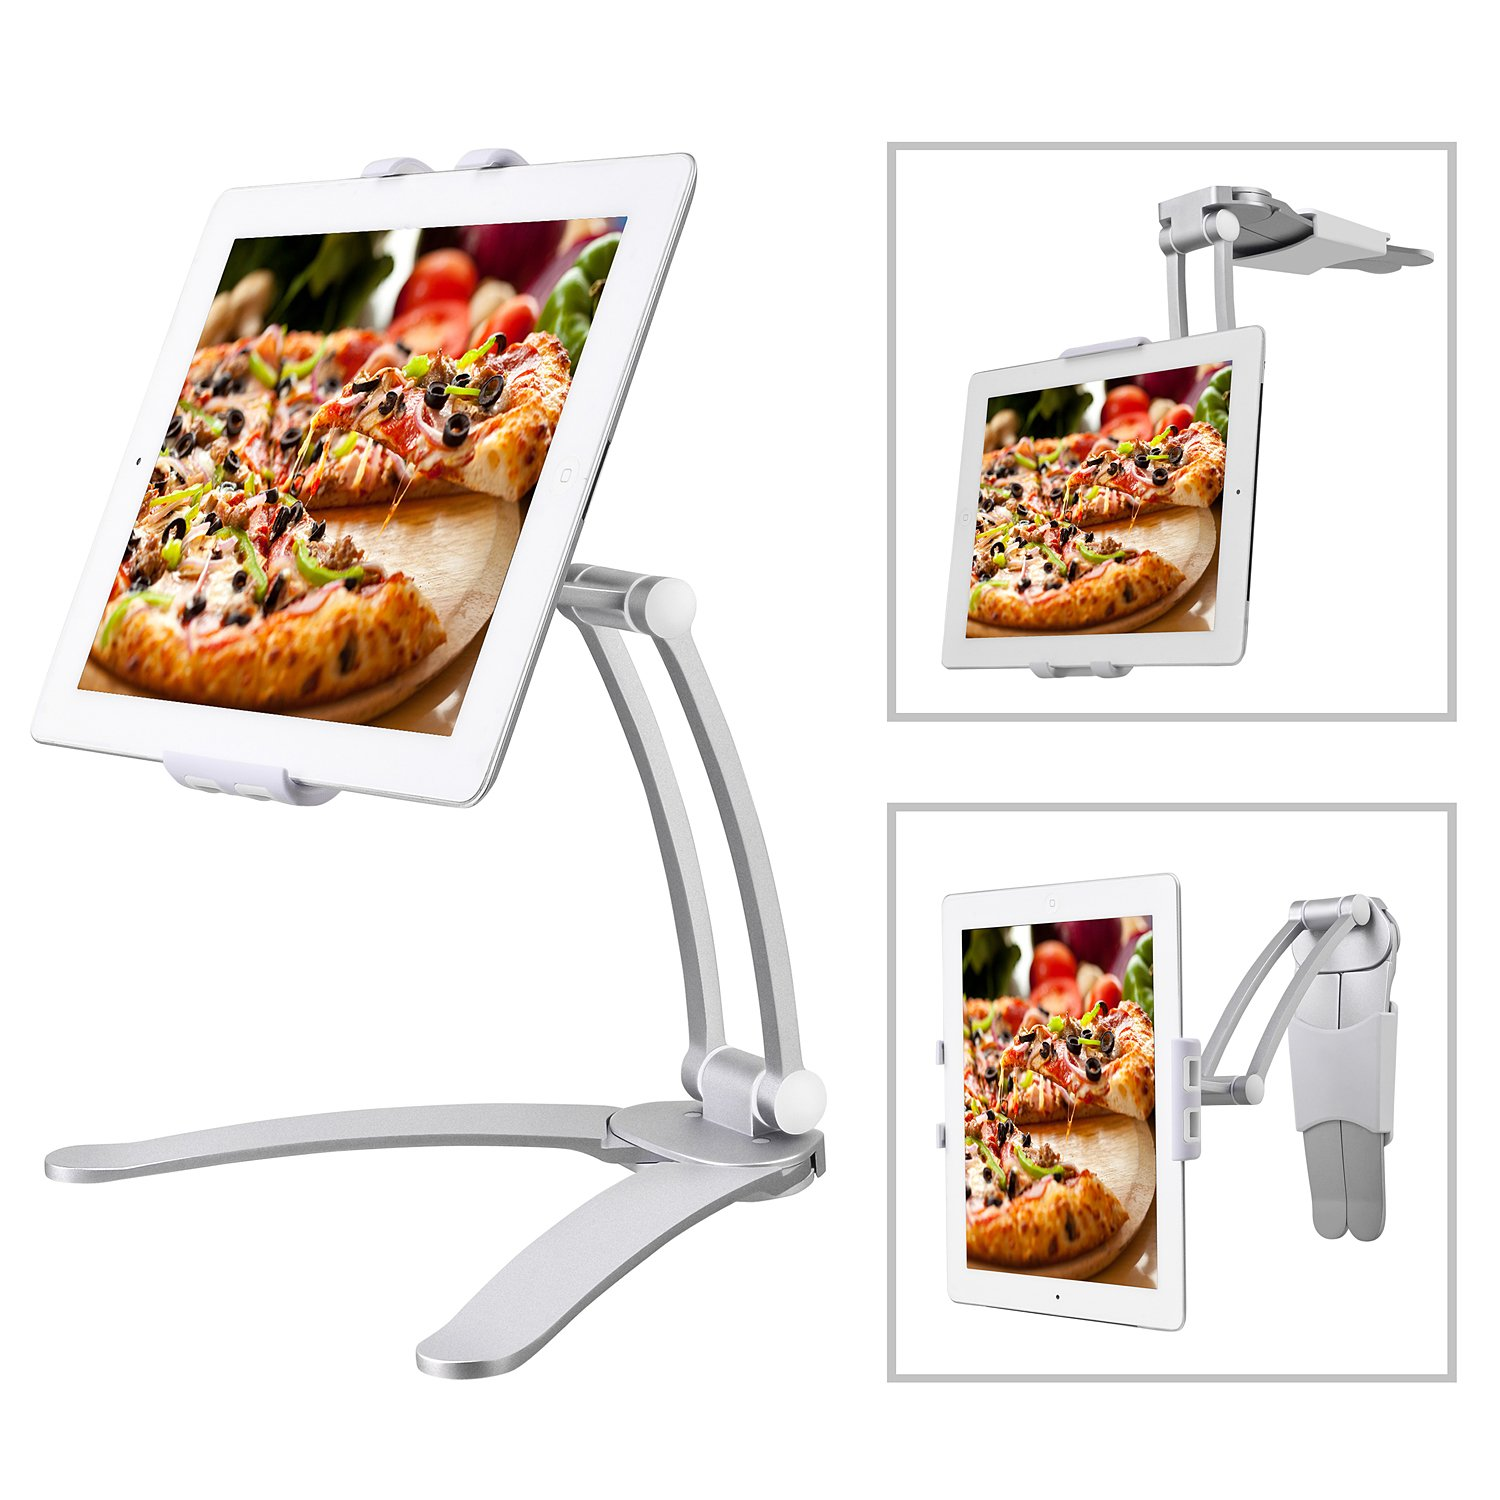 Marvelous Bingxue Kitchen Ipad Tablet Mount Stand For Wall Desktop Countertop Mount Recipe Holder For Ipad Mini Ipad Air Pro 10 5 9 7 Galaxy Tab Nexus Surface Home Interior And Landscaping Palasignezvosmurscom